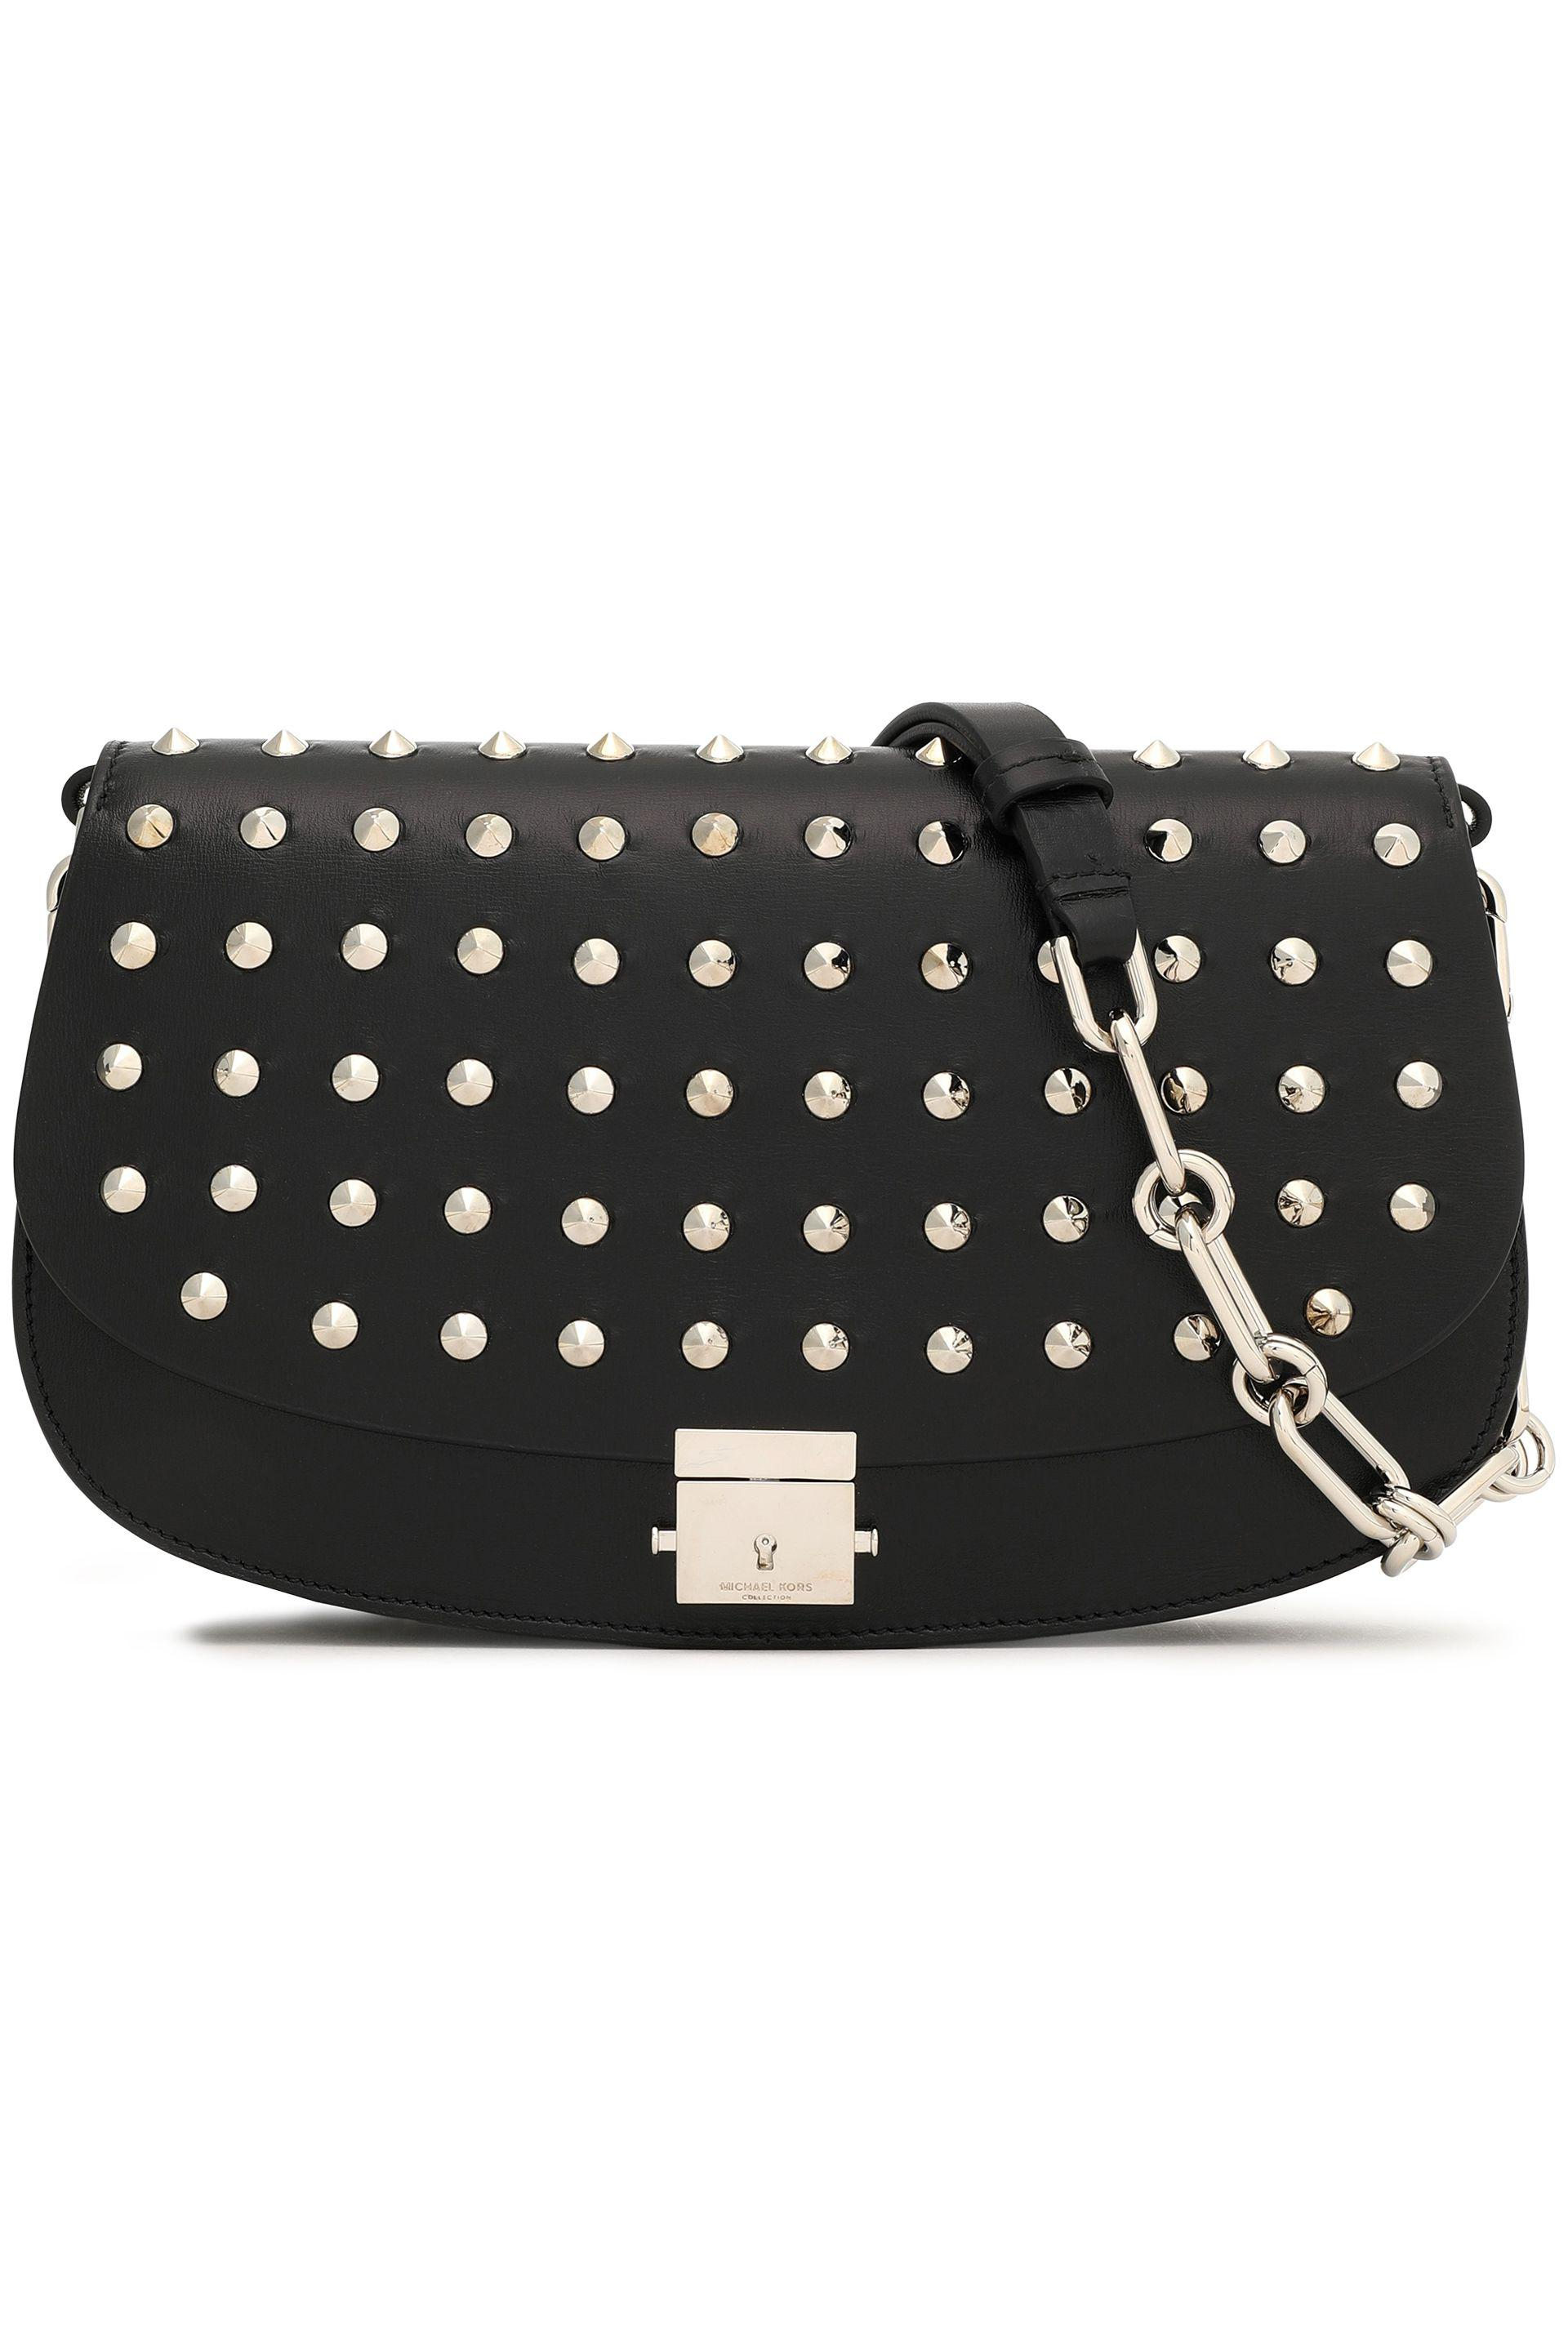 4053d852be6c Gallery. Previously sold at  THE OUTNET.COM · Women s Chain Strap Bags  Women s Leather Bags Women s Burberry Saddle Women s Michael By Michael Kors  ...